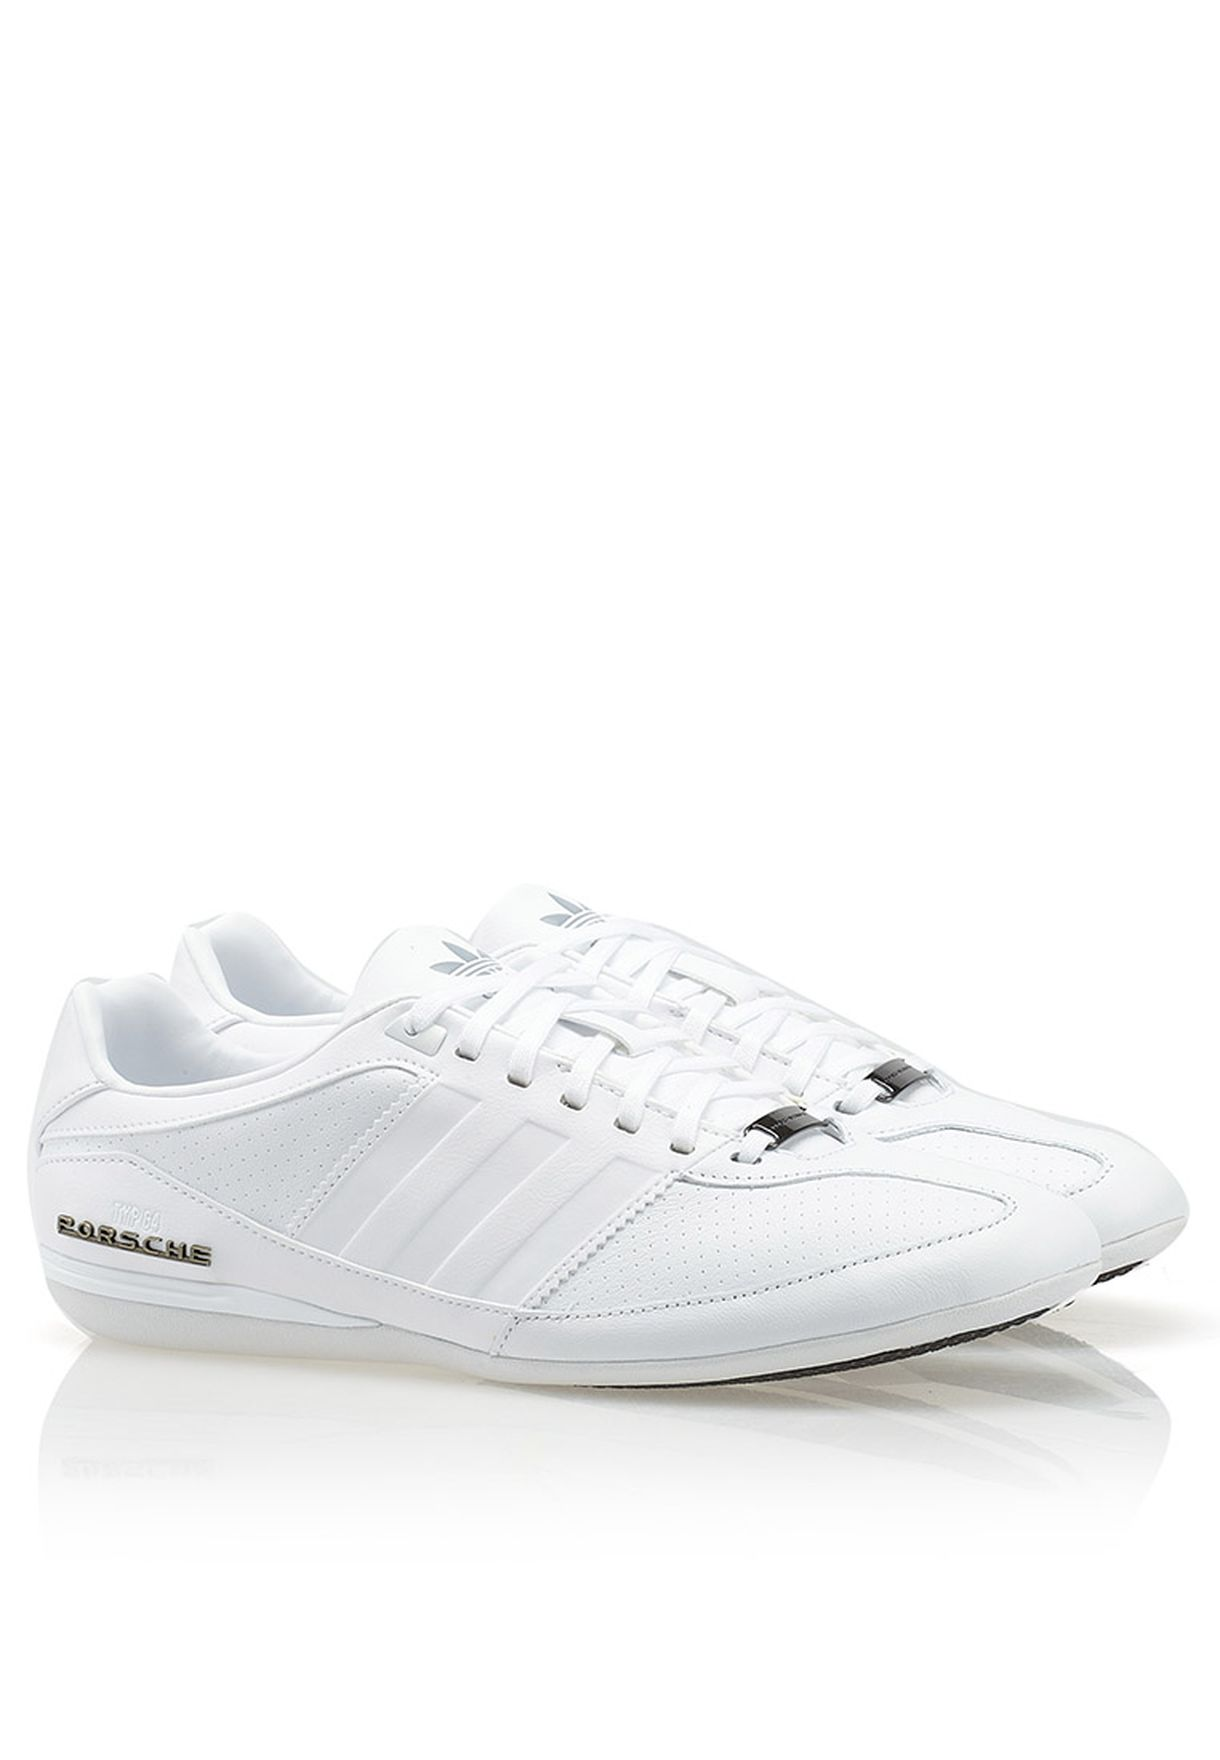 dd3fce49ecd1 Shop adidas Originals white Porsche Typ 64 Q23135 for Men in UAE ...